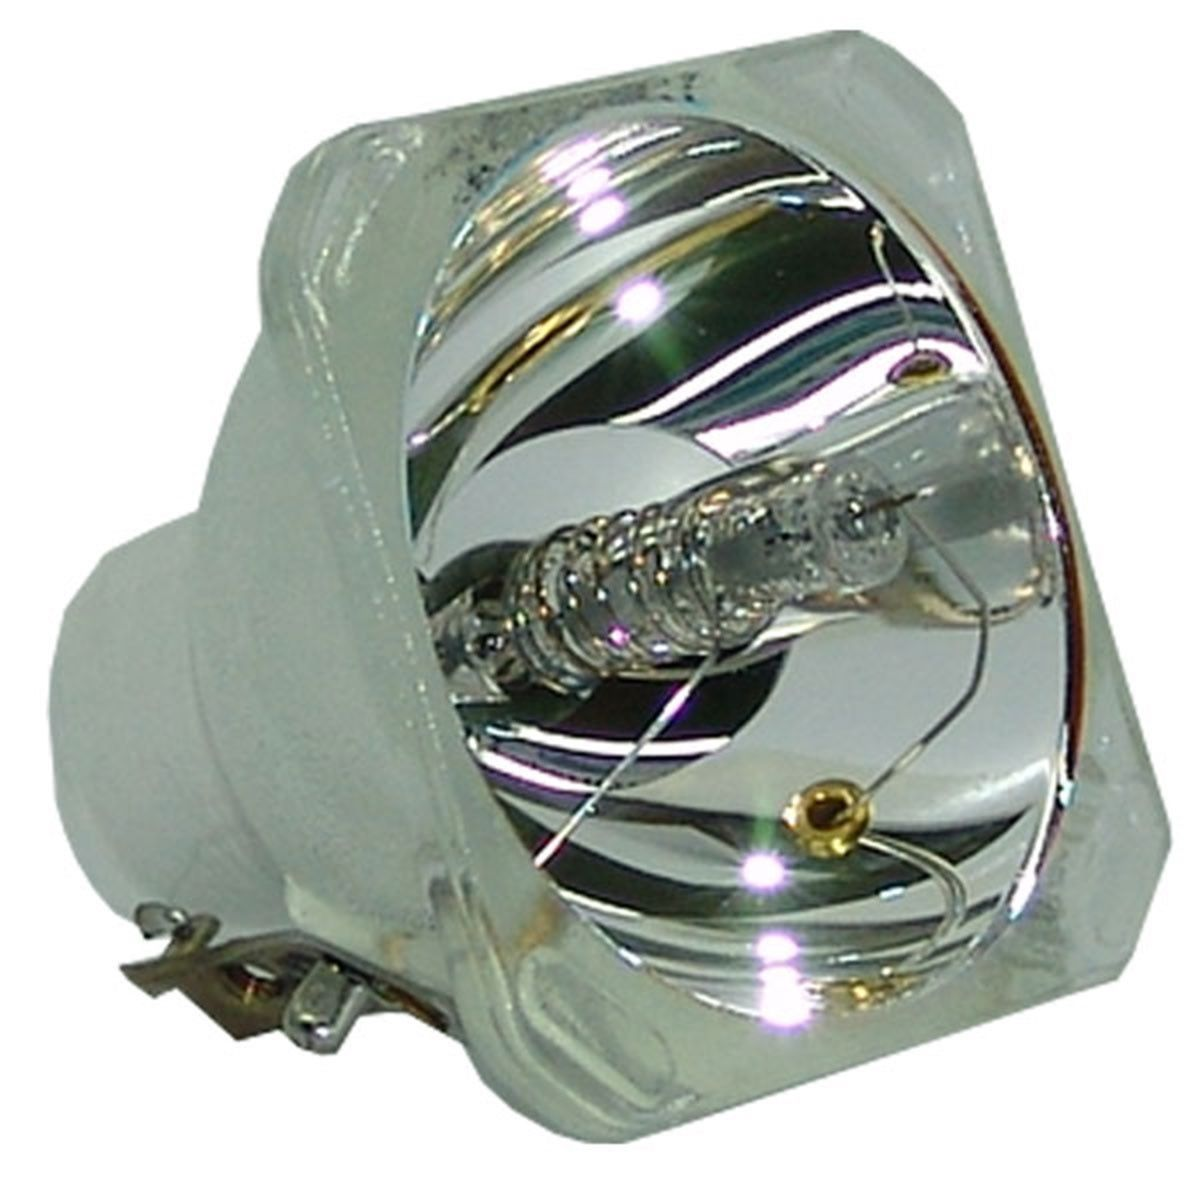 Compatible Bare Bulb SP-LAMP-033 SPLAMP033 for Infocus IN10 / M6 / SPLAMP033 Projector Lamp Bulb without housing